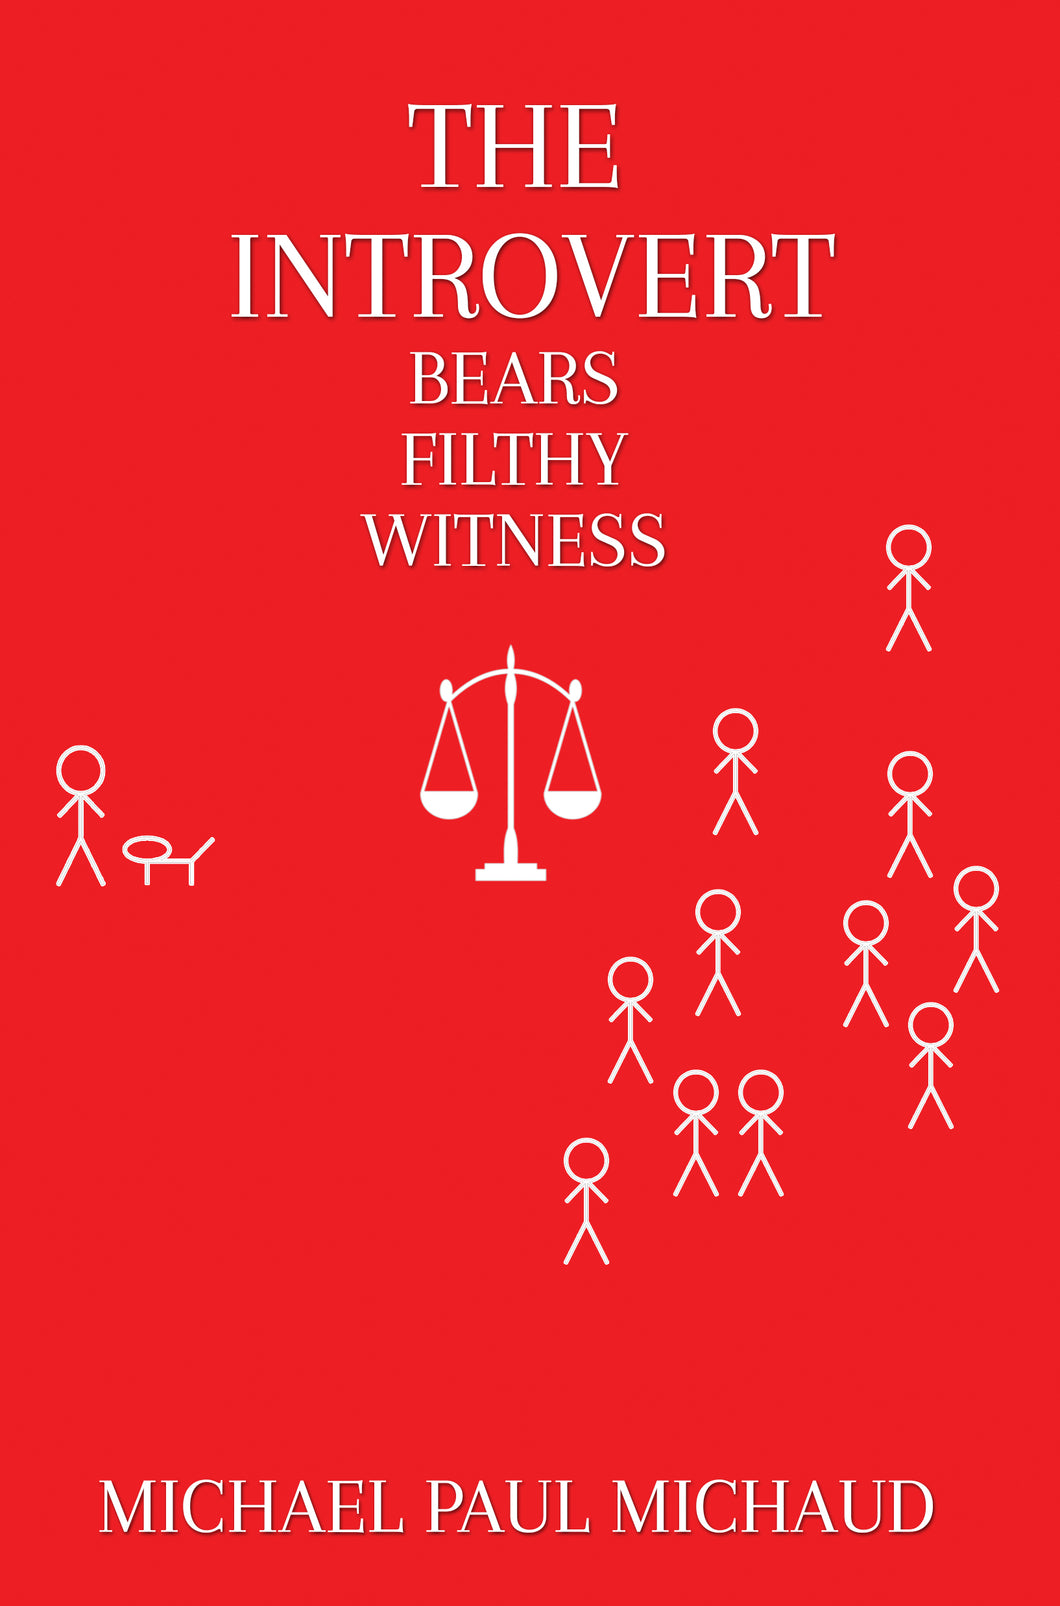 The Introvert Bears Filthy Witness